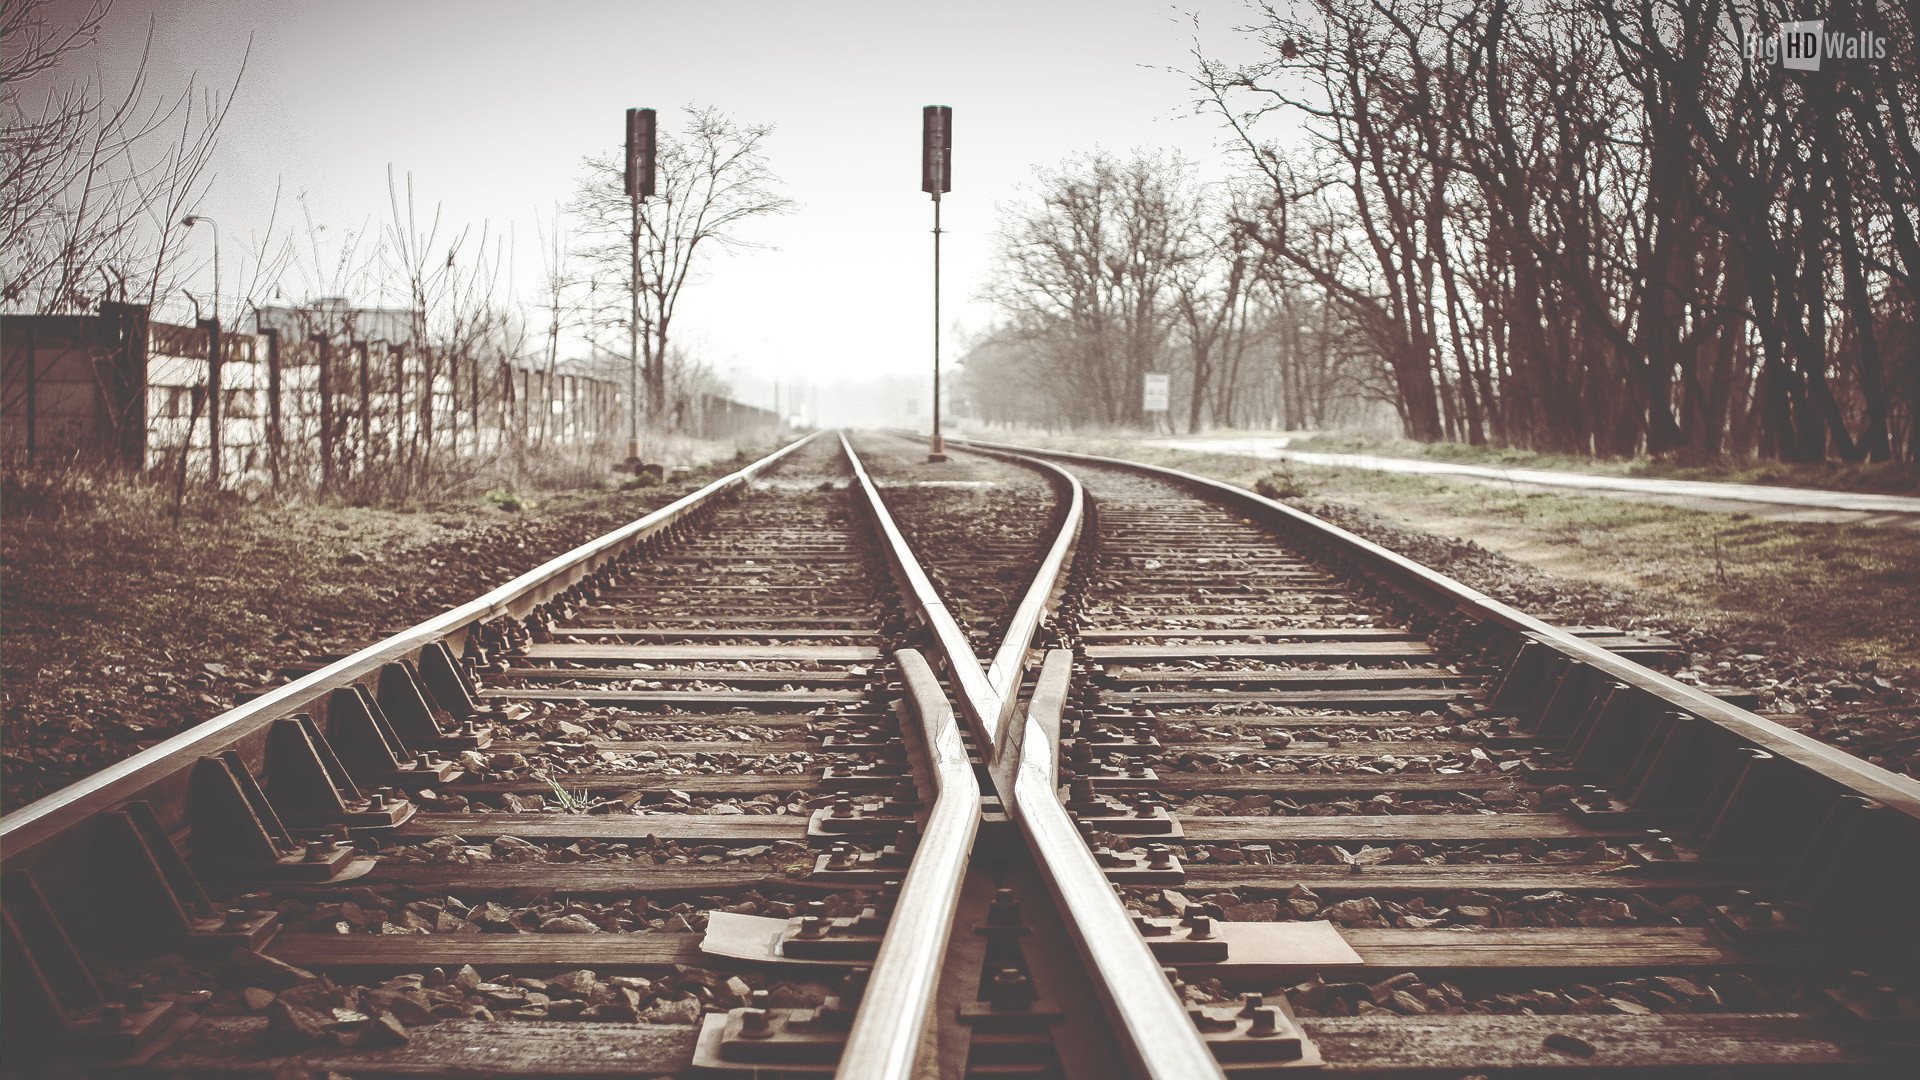 1920x1080, Train Track Hd Images Wallpapers   Data - Old Railway , HD Wallpaper & Backgrounds